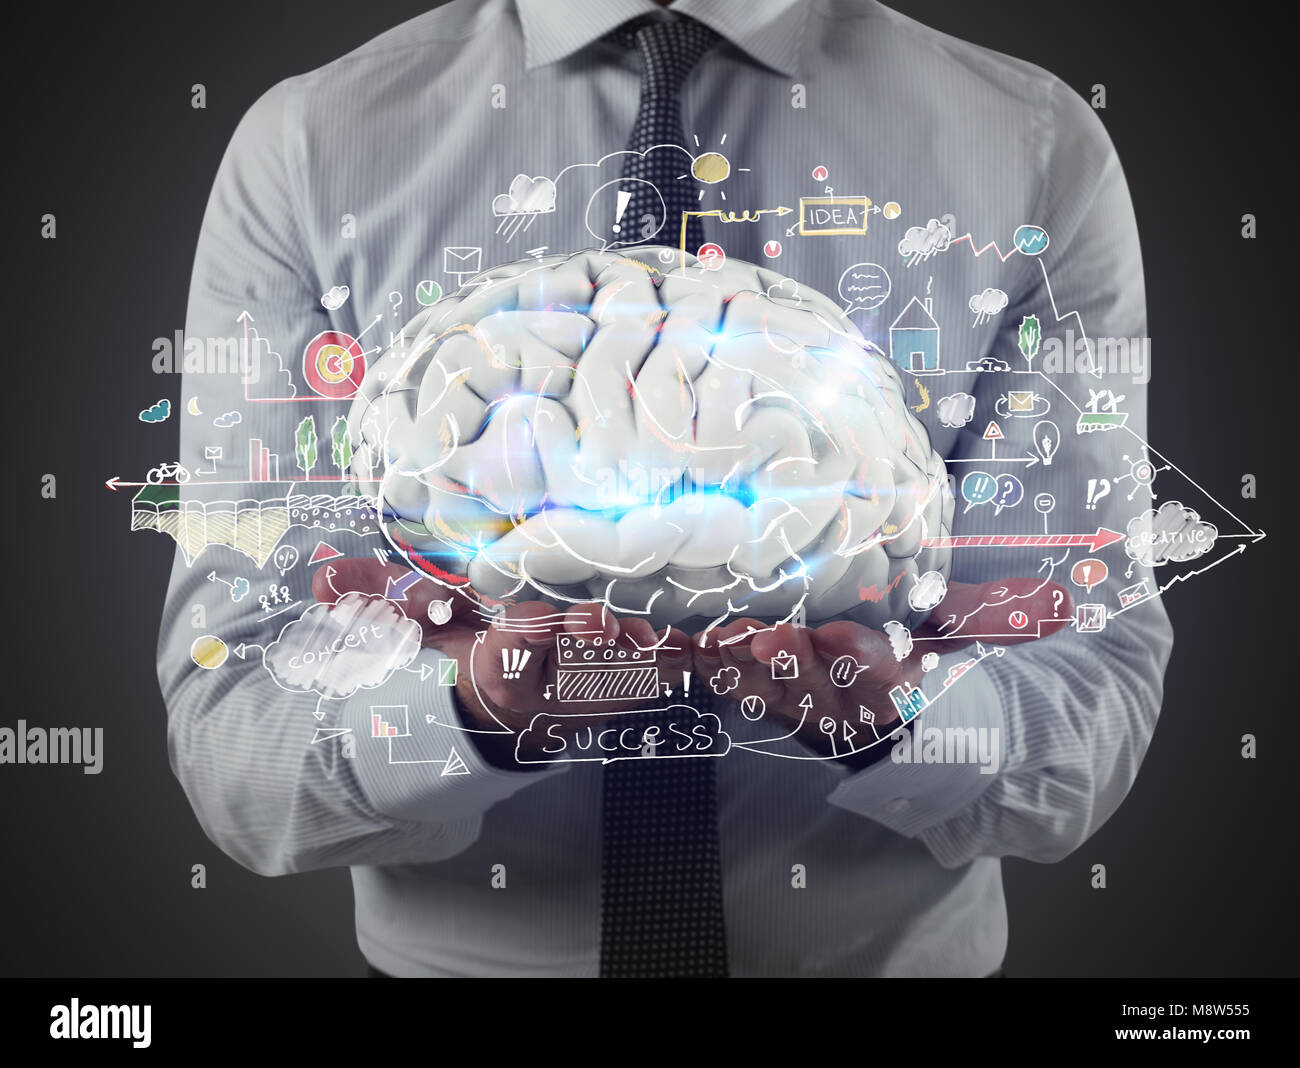 Man holds a brain with business drawing sketches on his hands. 3D Rendering - Stock Image